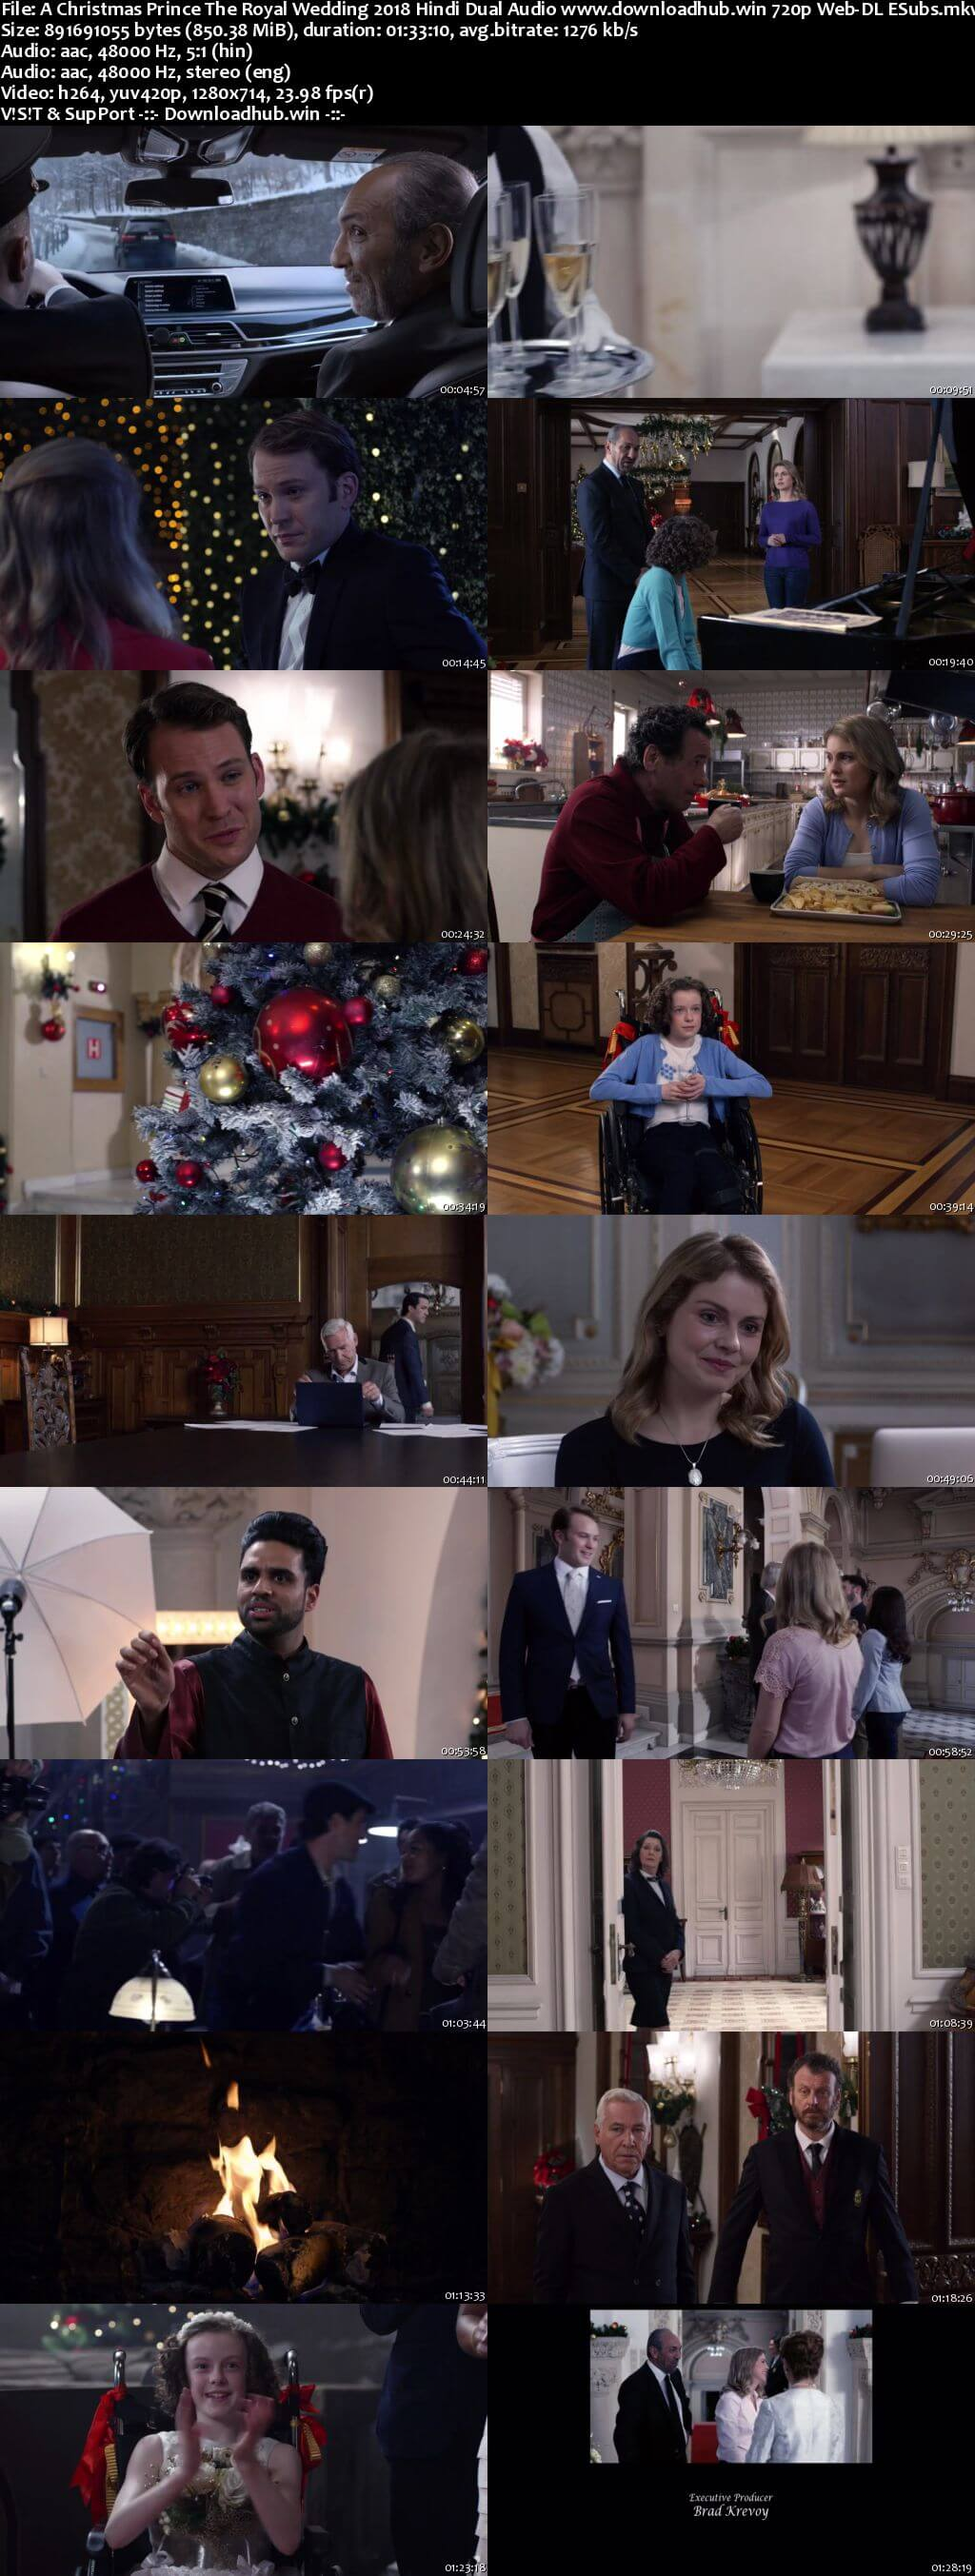 A Christmas Prince The Royal Wedding 2018 Hindi Dual Audio 720p Web-DL ESubs